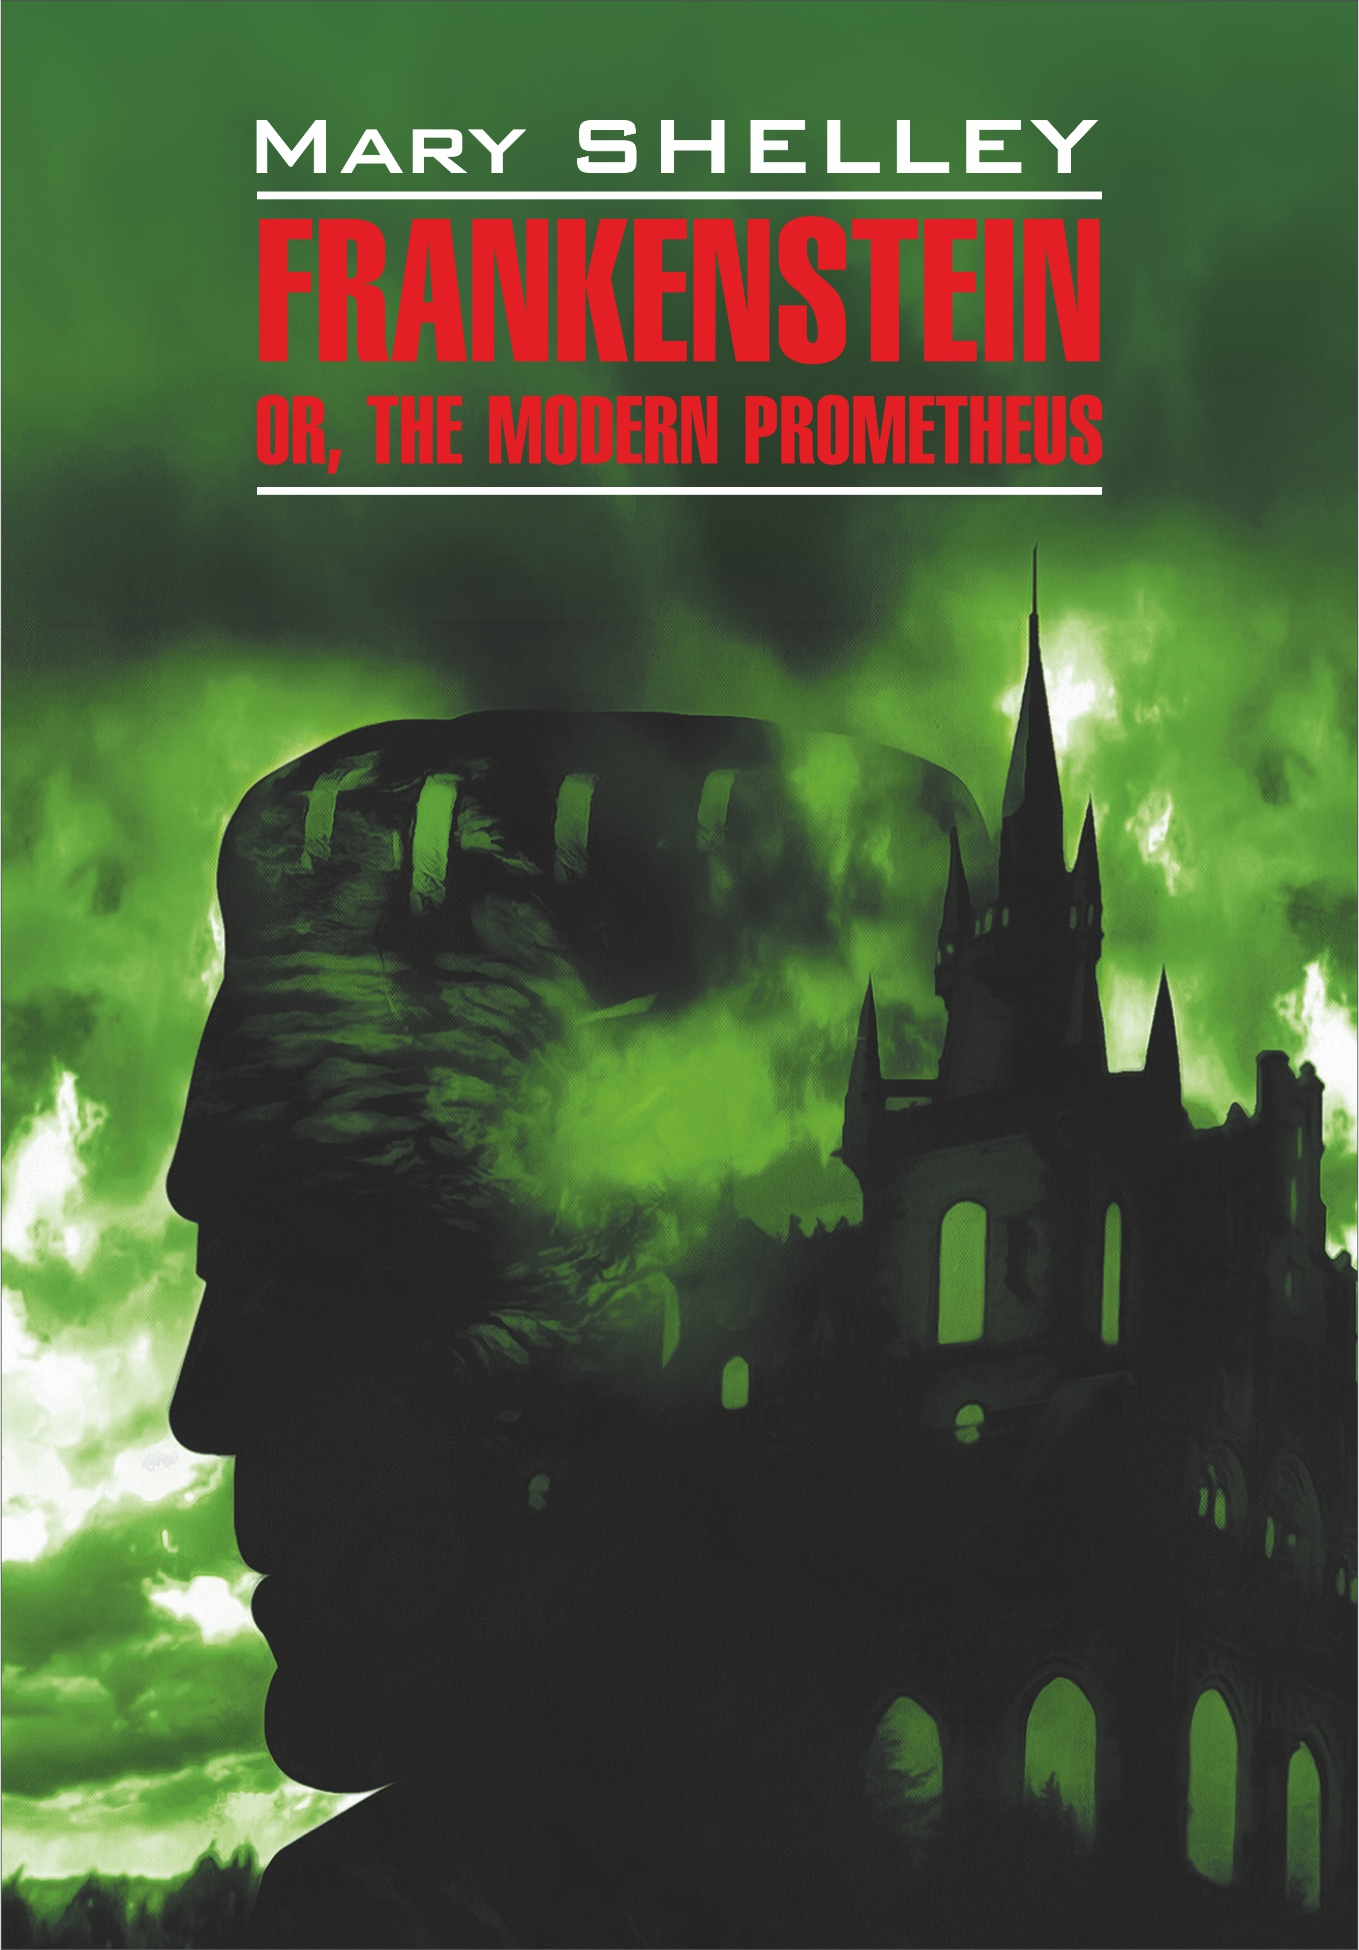 Мэри Шелли Frankenstein, or The Modern Prometheus / Франкенштейн, или Современный Прометей. Книга для чтения на английском языке мэри шелли франкенштейн или современный прометей frankenstein or the modern prometheus метод комментированного чтения